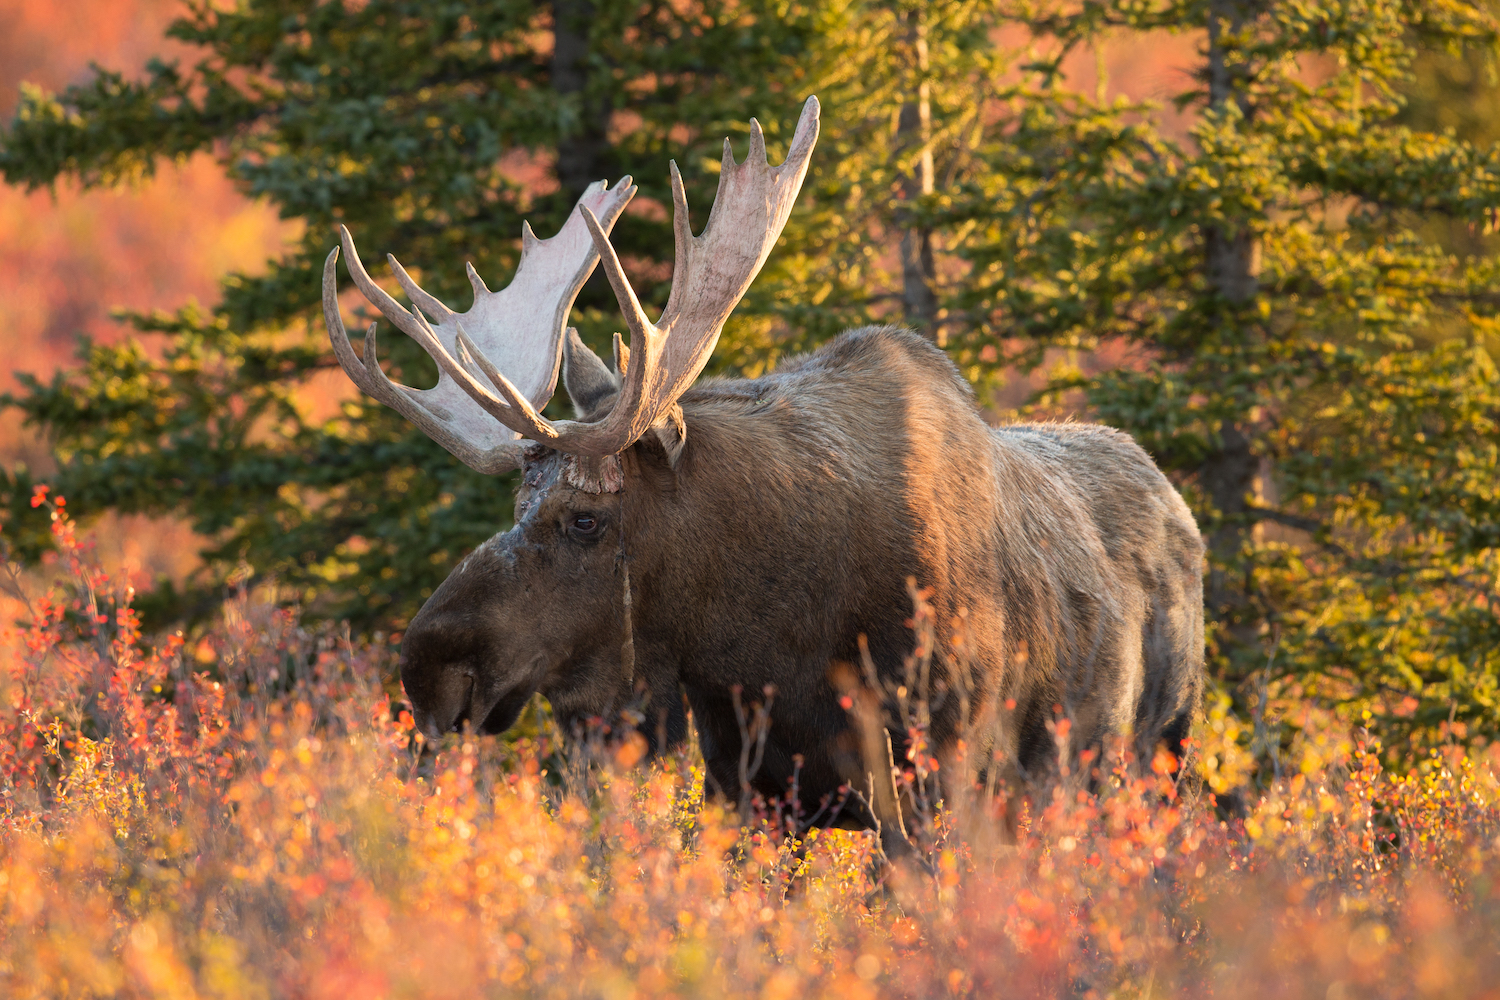 Magnificent moose: The comeback story of Michigan's Upper Peninsula herd